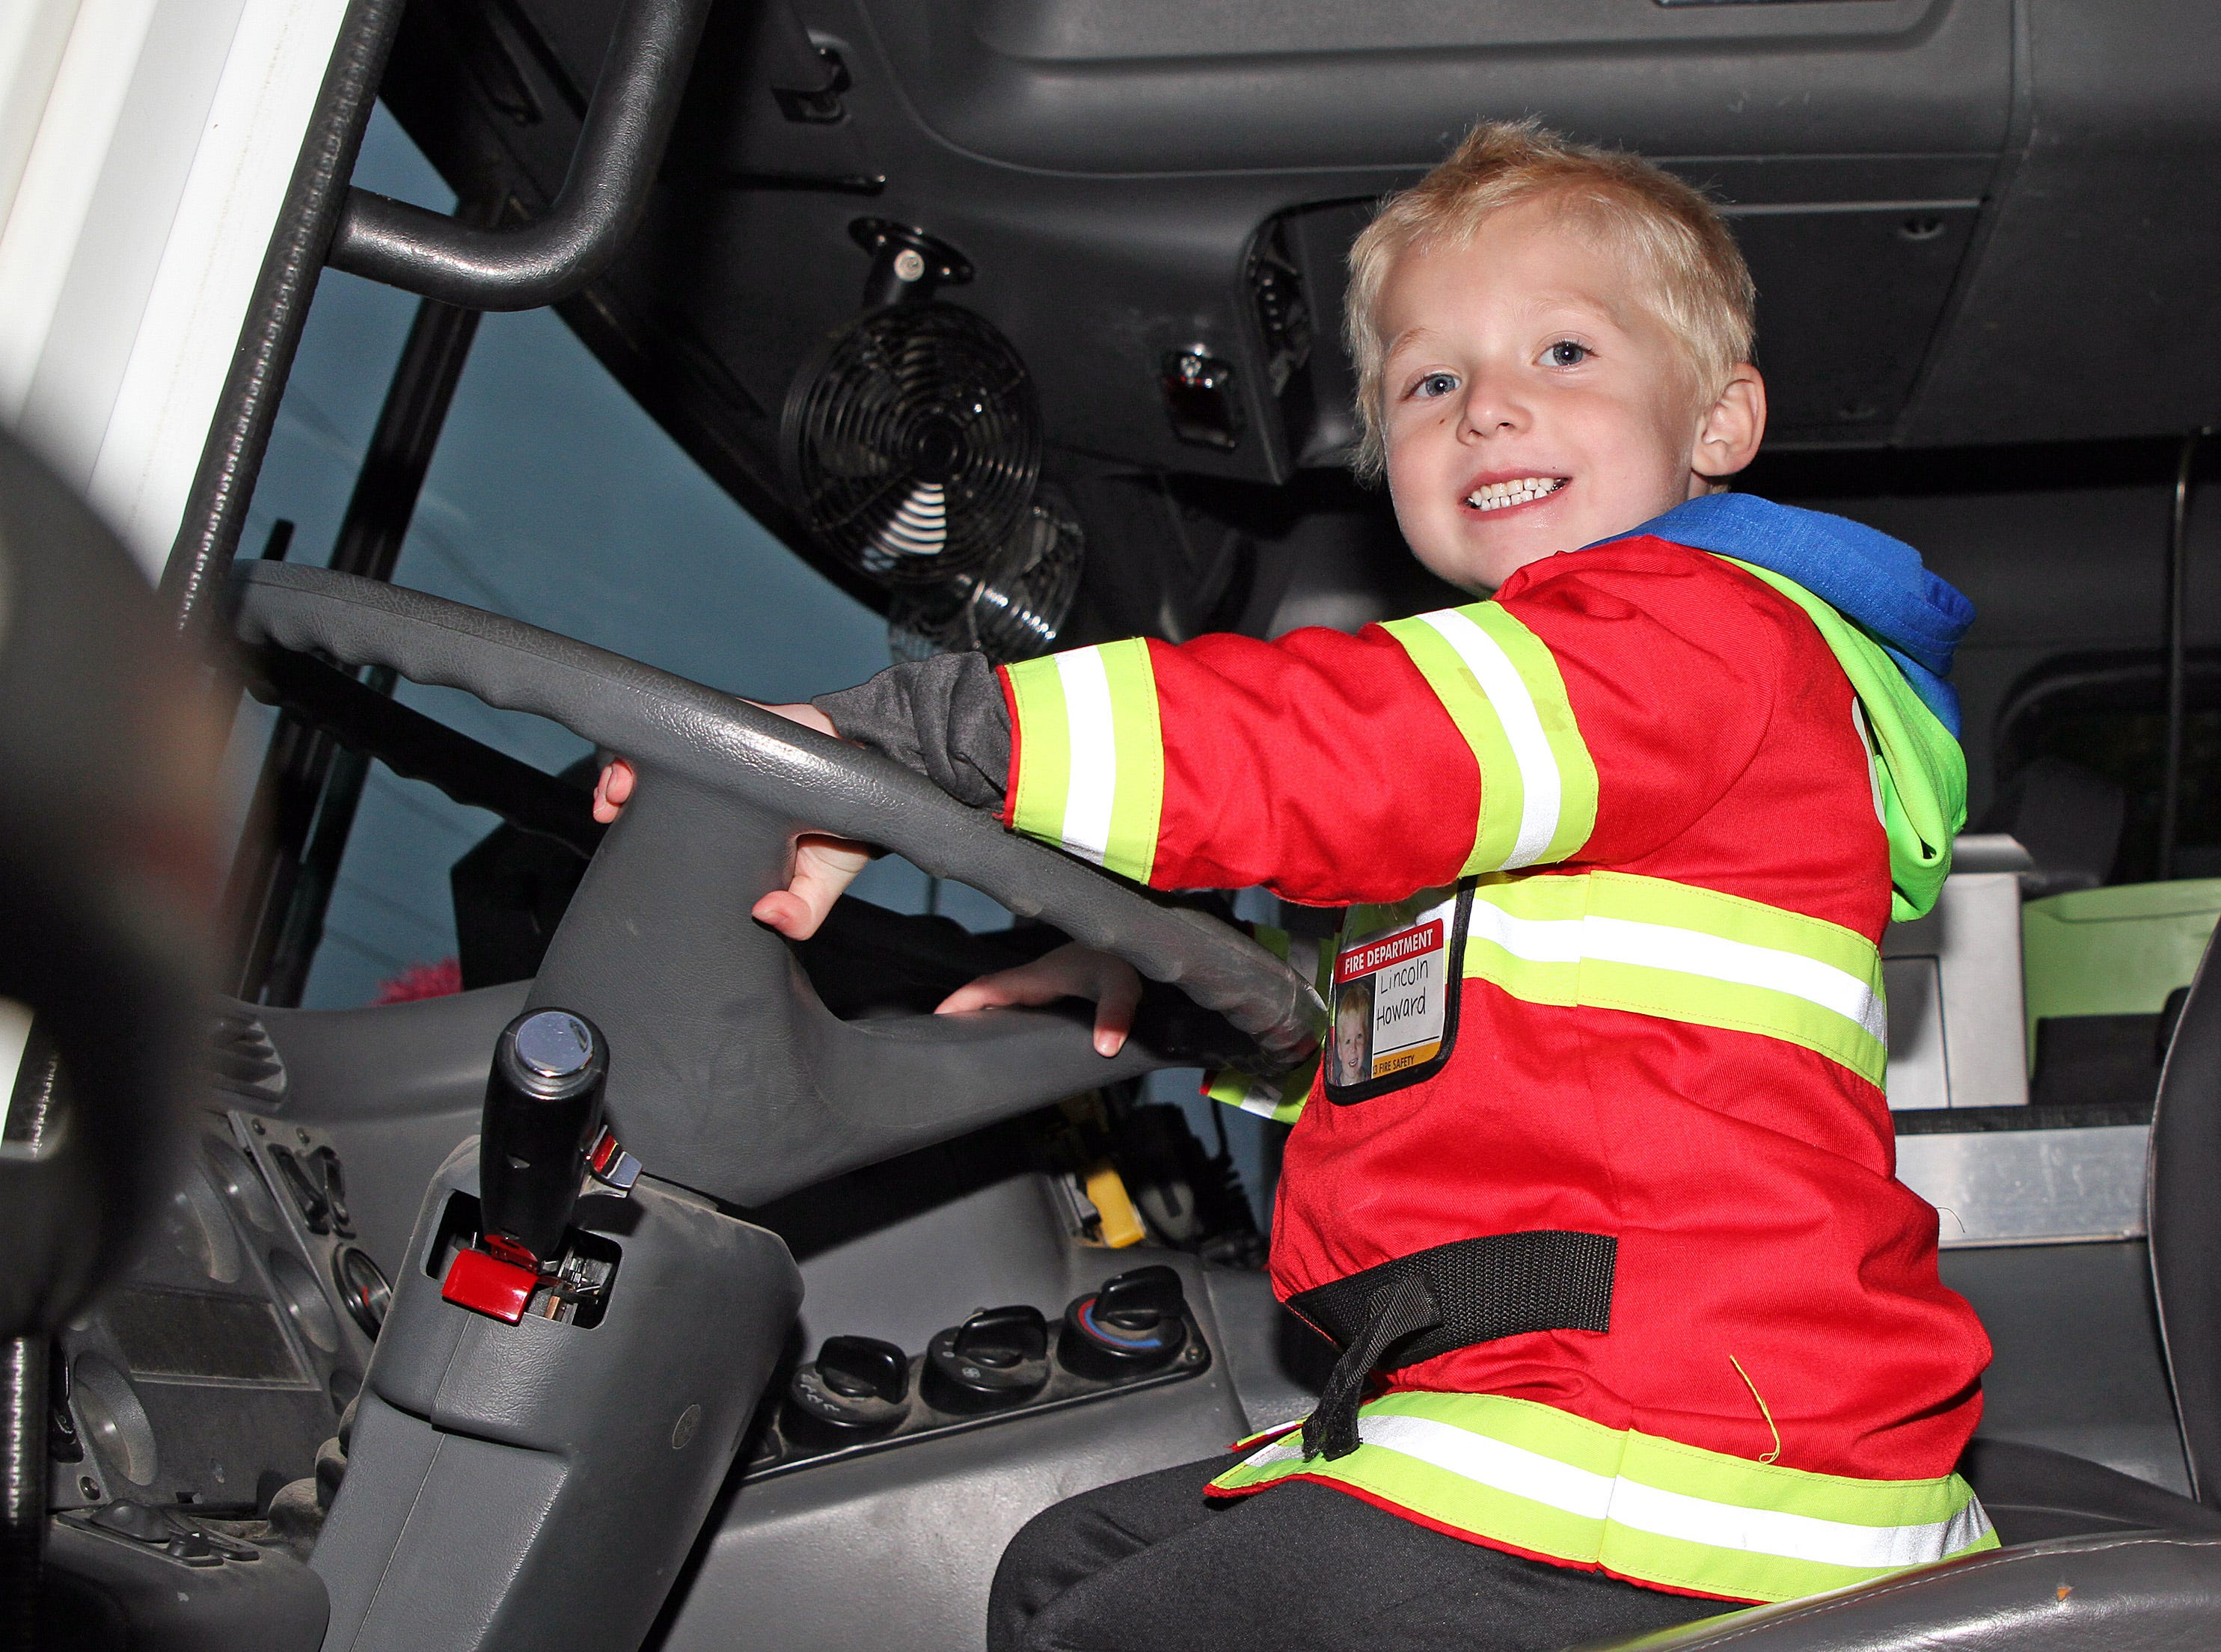 Lincoln Howard, 5, of Ankeny checks out the fire truck  during the Ankeny Fire Department's Fire Prevention Week Open House on Wednesday,  Oct. 10, 2018 at Fire Station #1, 120 N.W. Ash Dr in Ankeny.